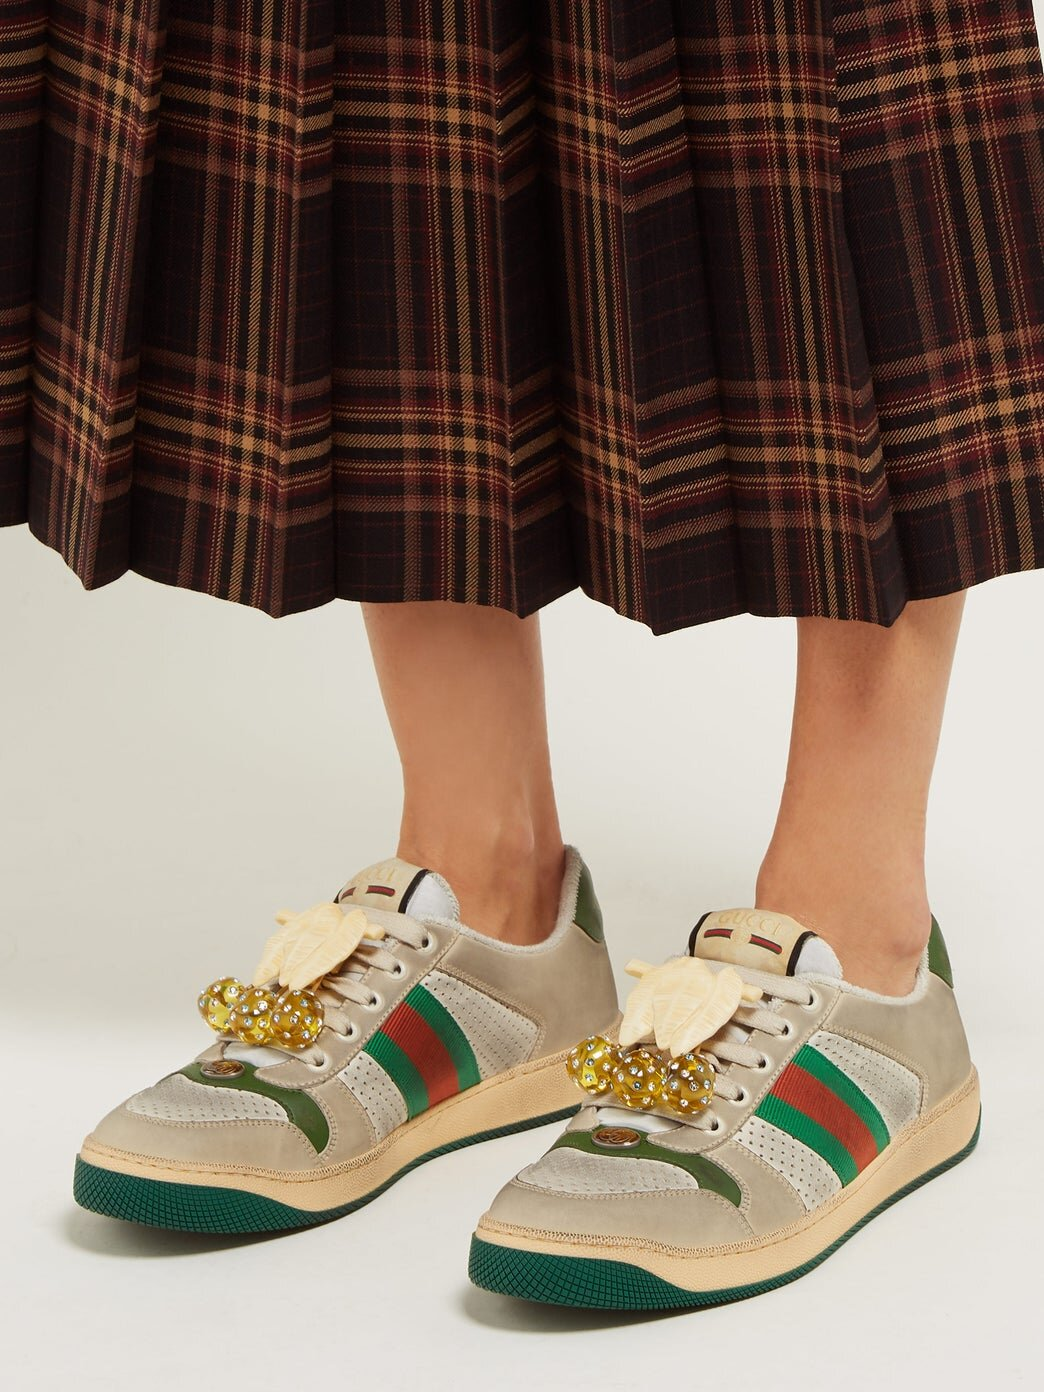 Gucci's 'worn look' trainers